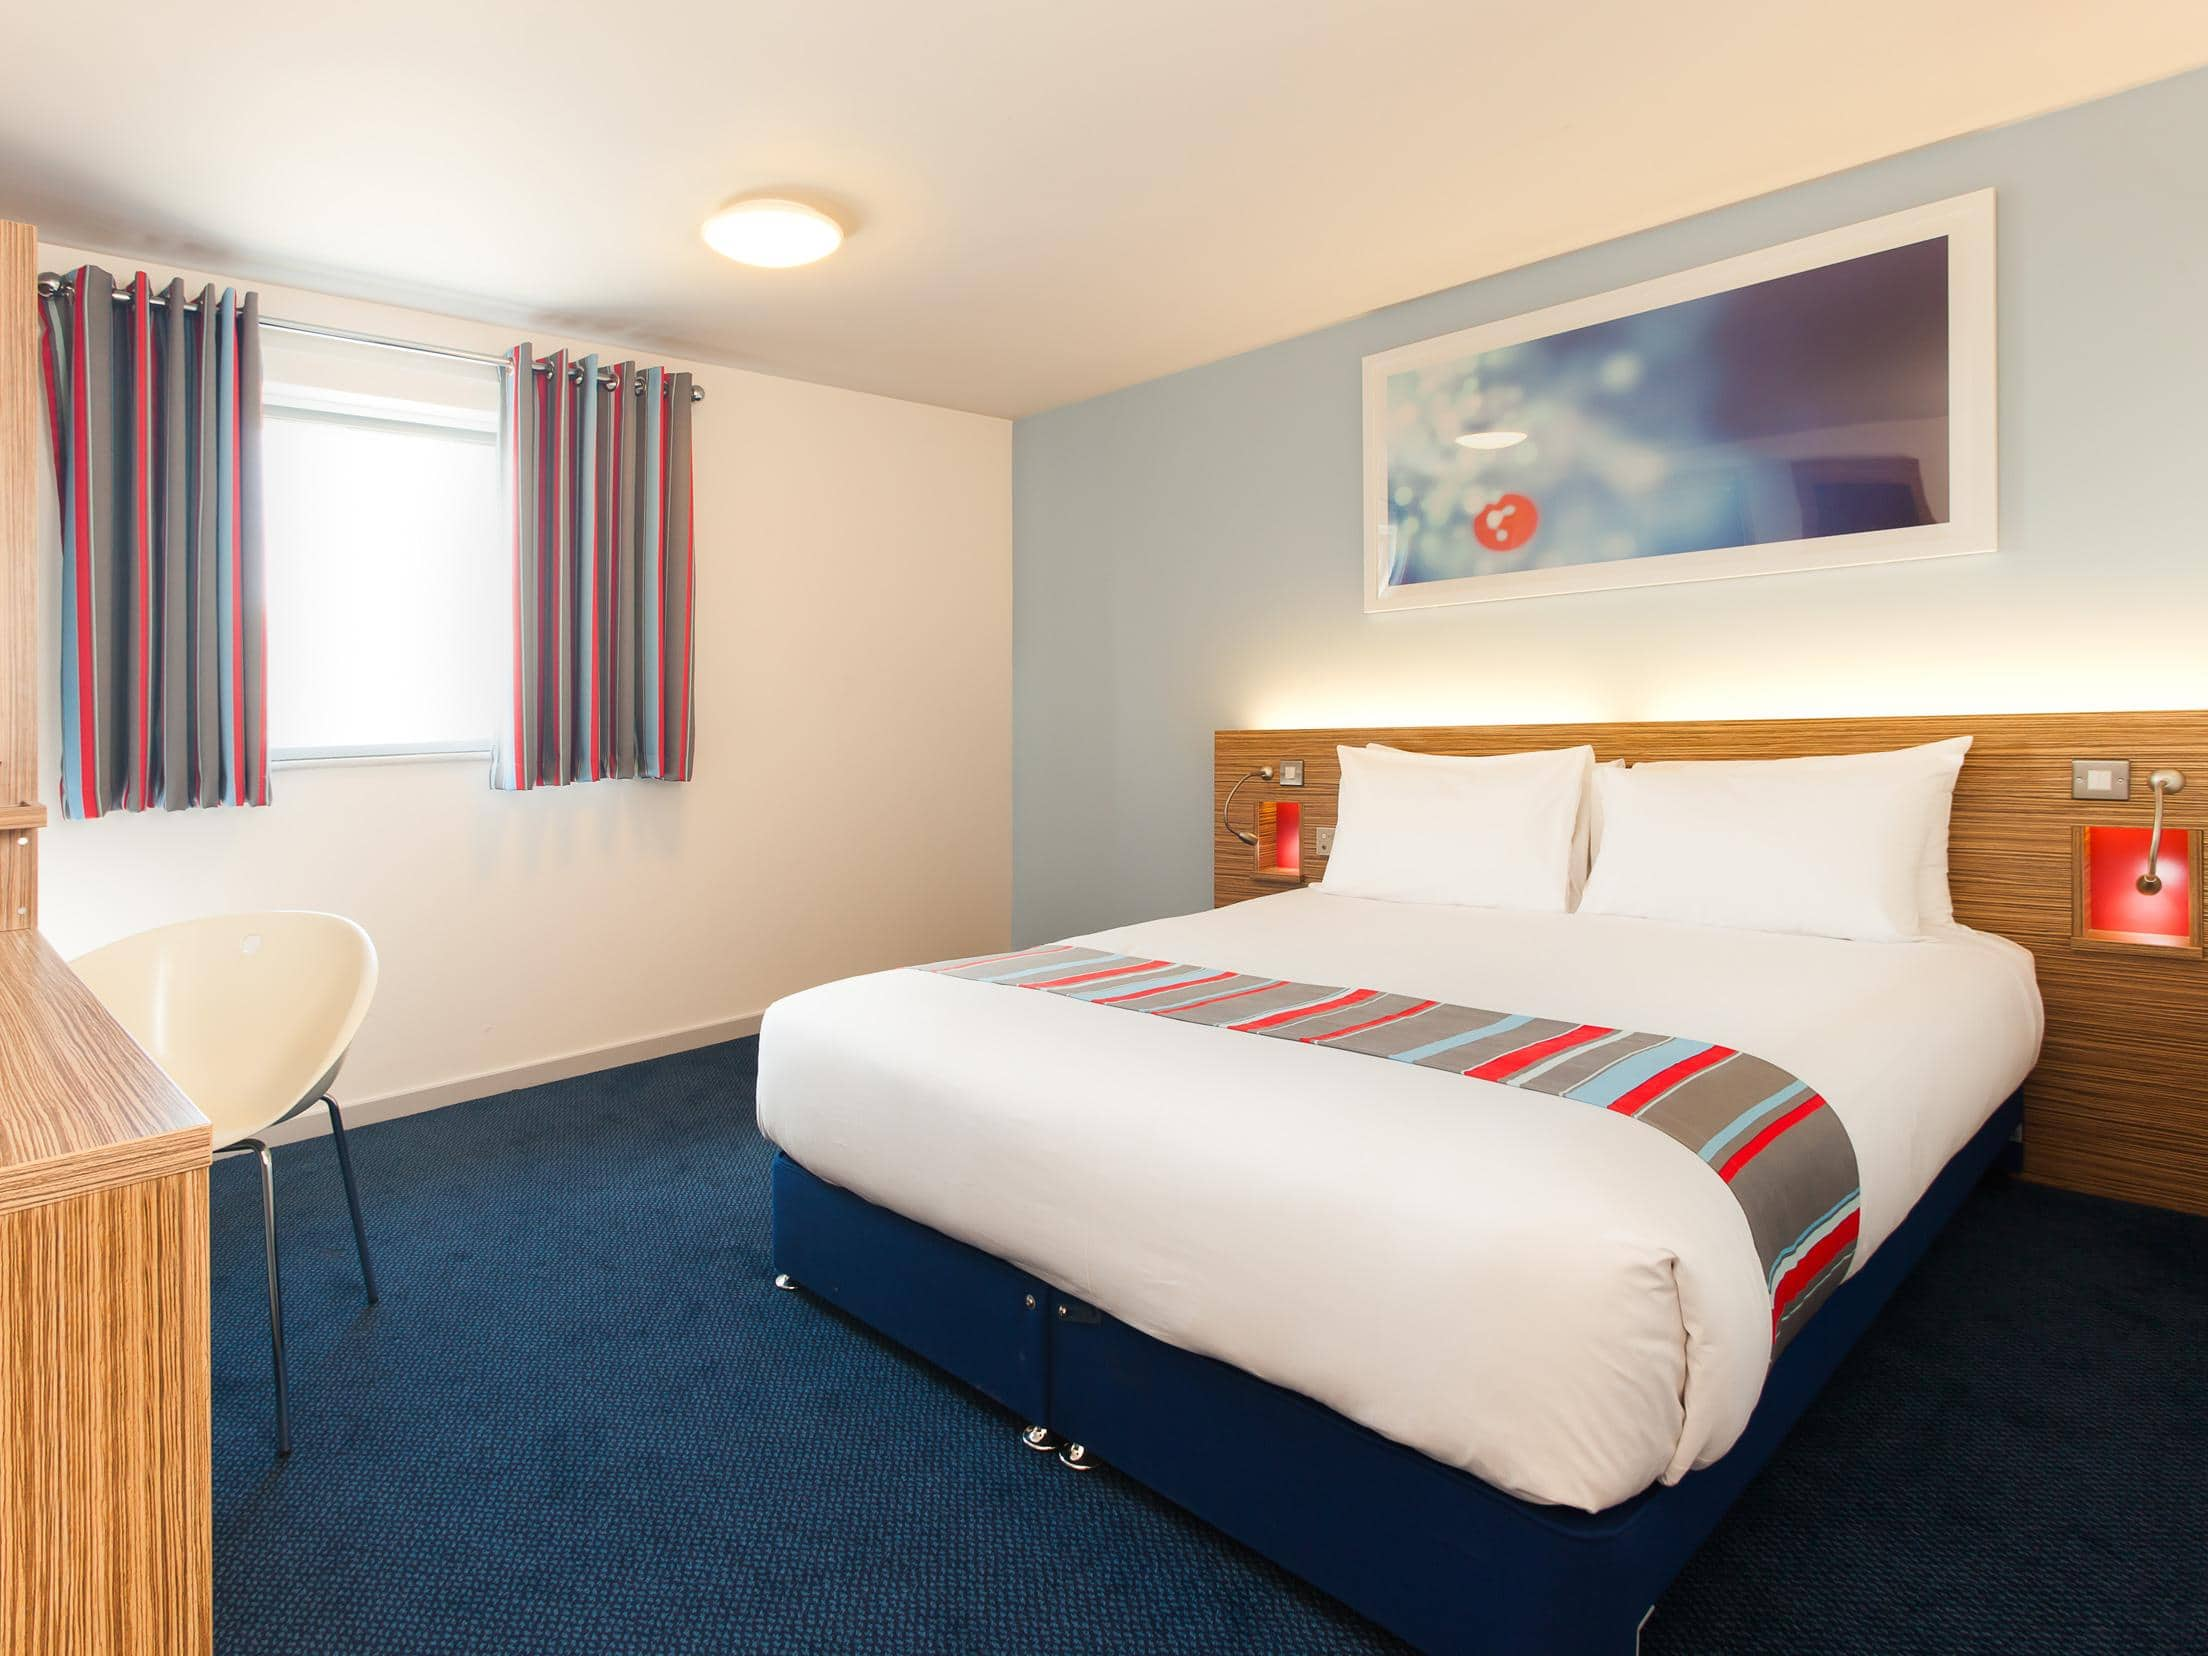 Travelodge Canterbury Chaucer Central Hotel Canterbury Chaucer - Travelodge location map uk